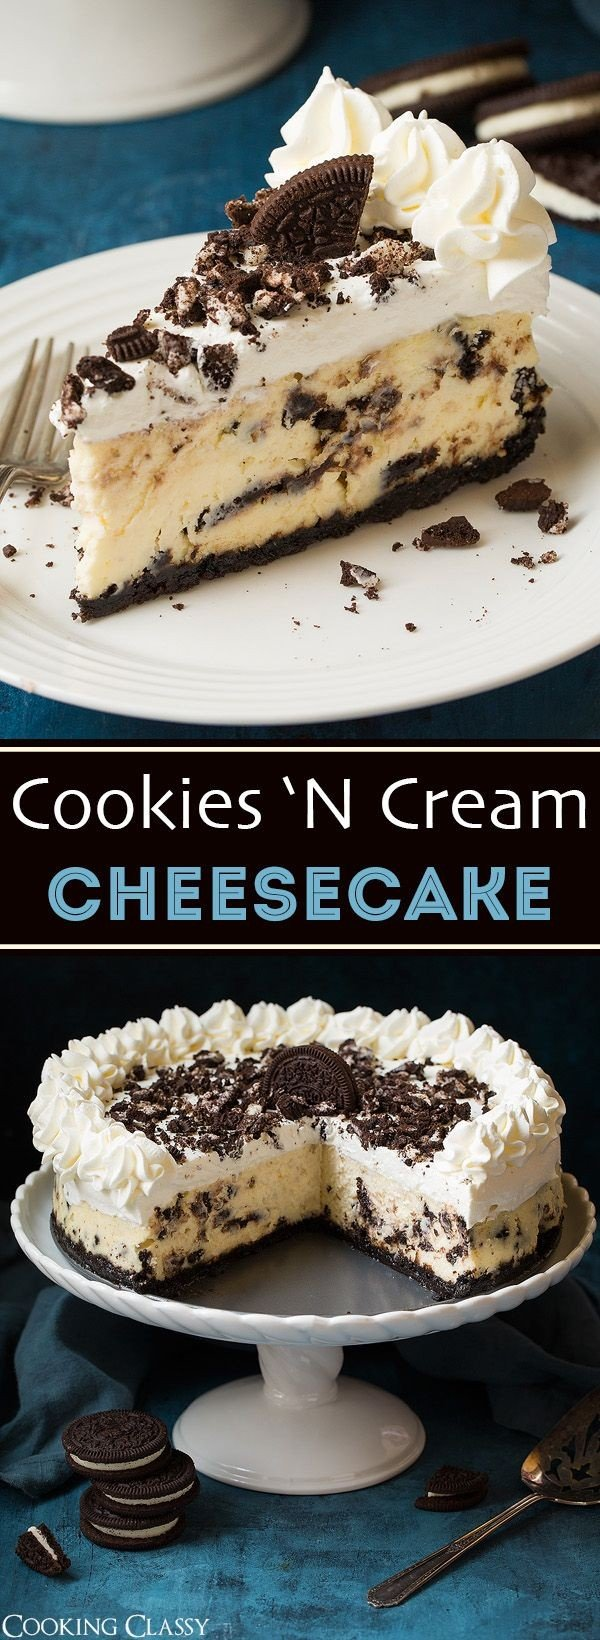 25 Mouthwatering Christmas Cheesecake Recipes